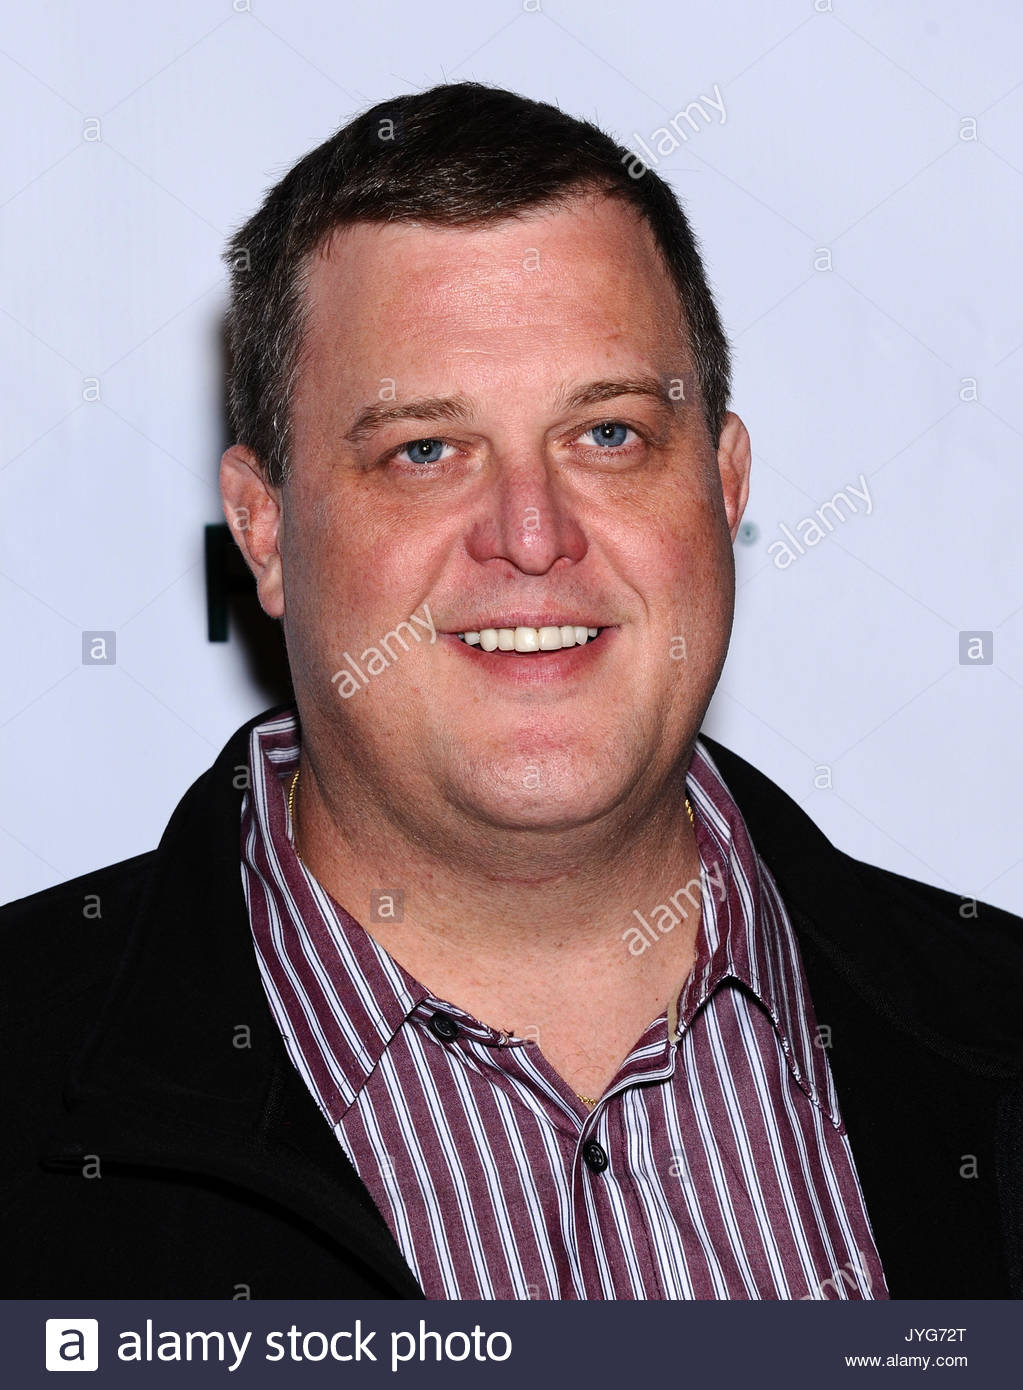 Billy Gardell. 'Certainty' Los Angeles premiere. - Stock Image